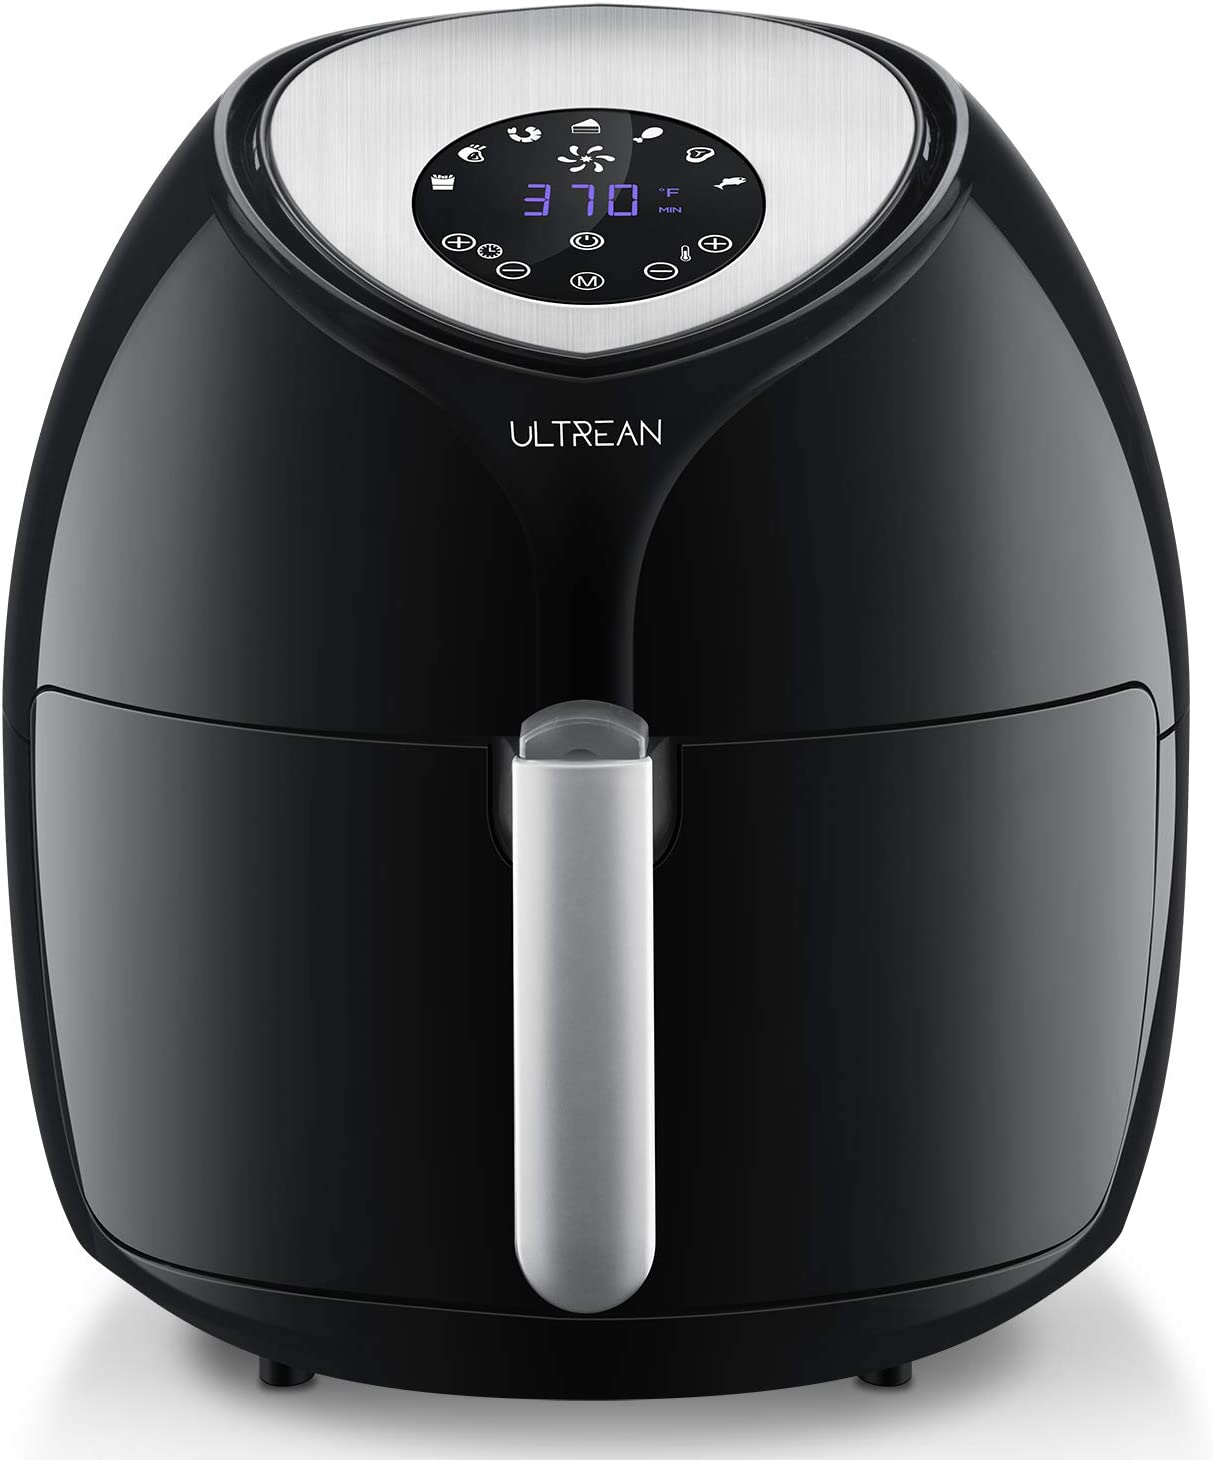 Ultrean 6 Quart Air Fryer, Large Family Size Electric Hot Air Fryers XL Oven Oilless Cooker with 7 Presets, LCD Digital Touch Screen and Nonstick Detachable Basket,UL Certified,1700W (Black)